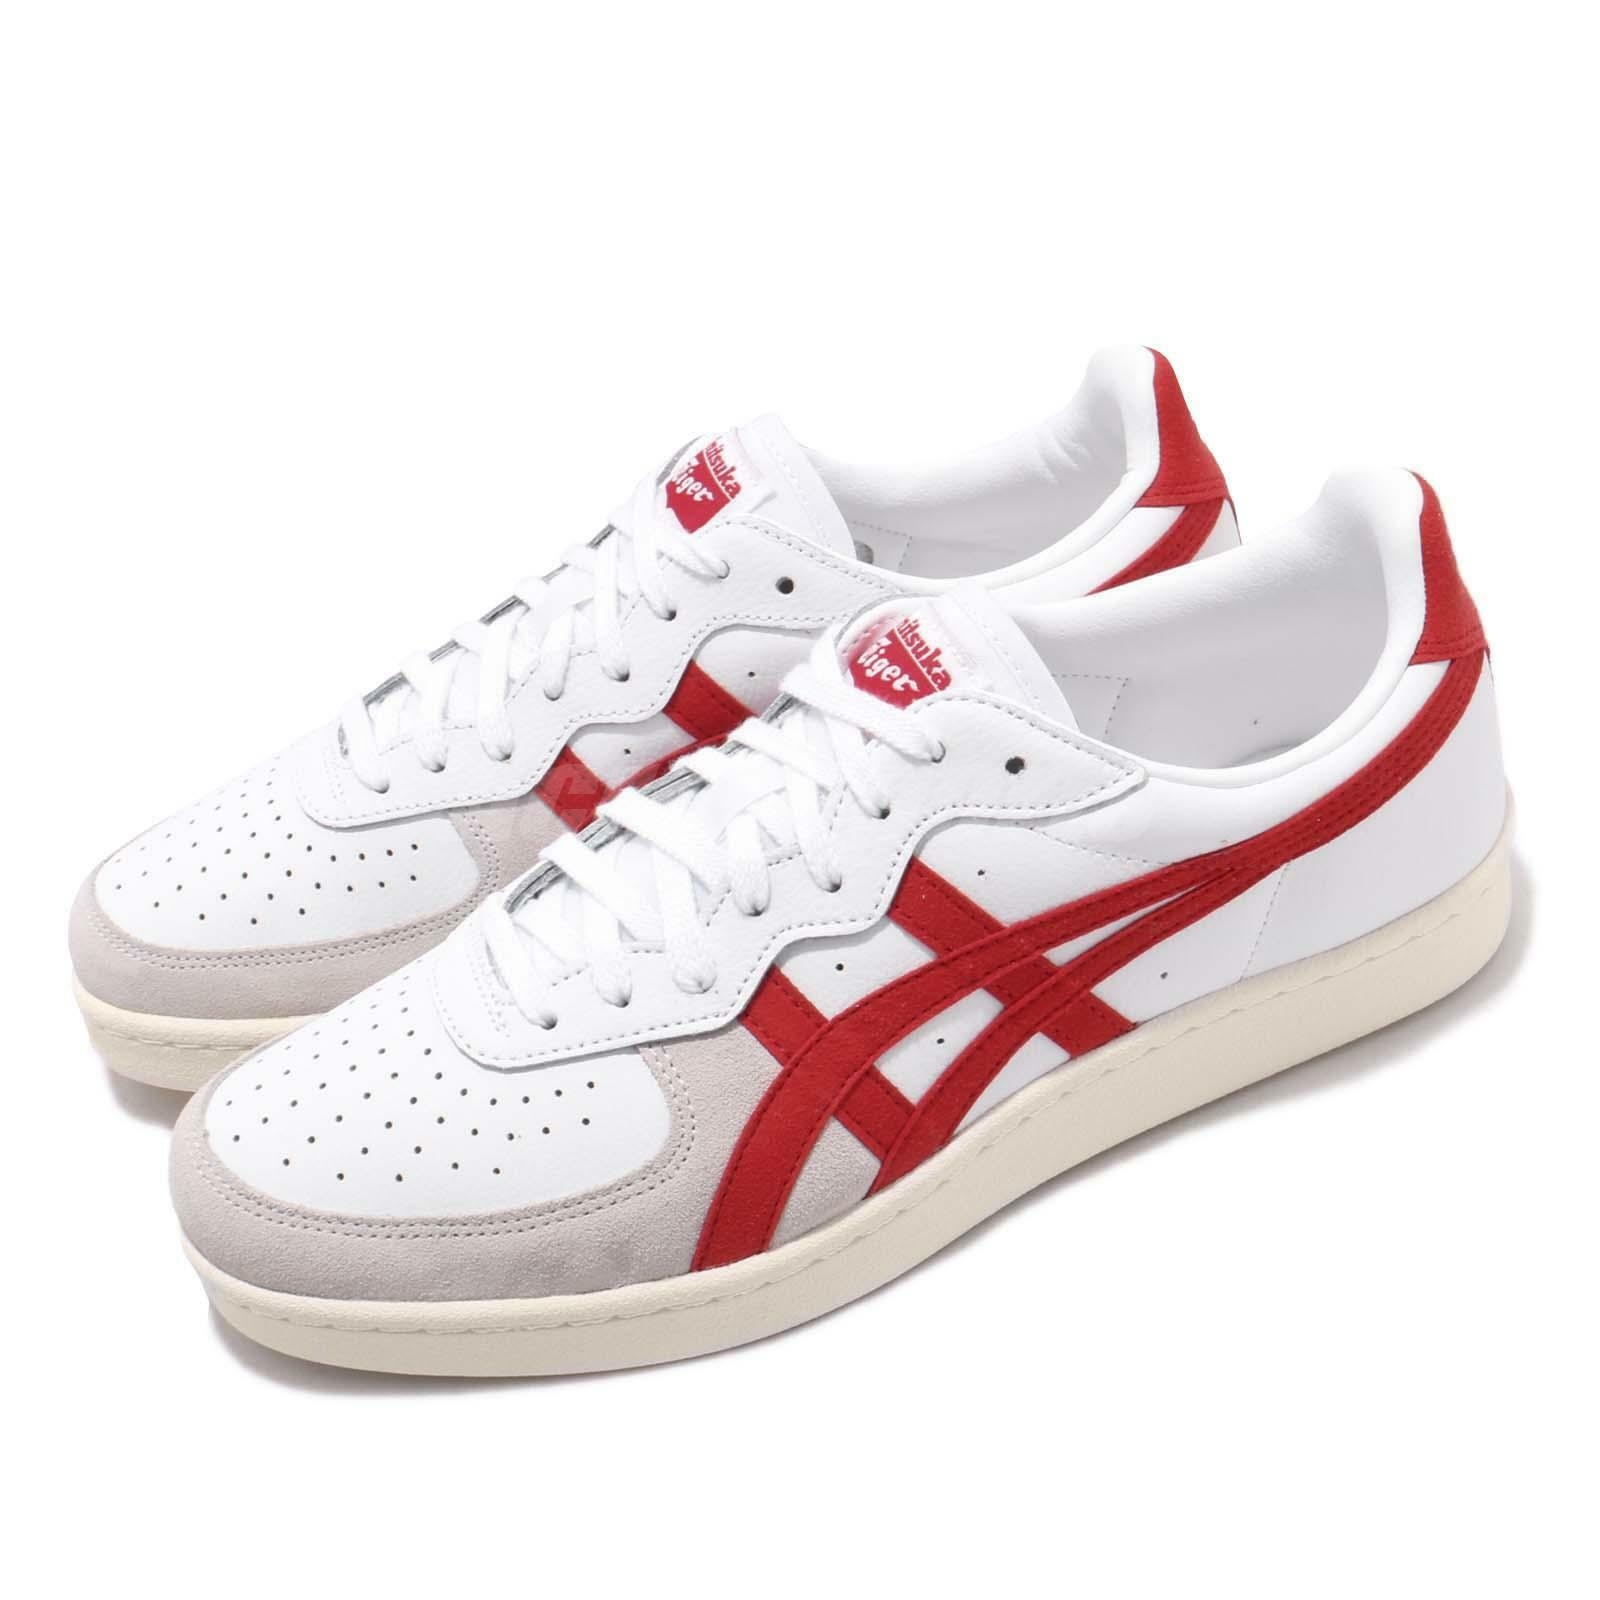 Asics Onitsuka Tiger GSM blanc Classic rouge Men Casual chaussures baskets 1183A353-101